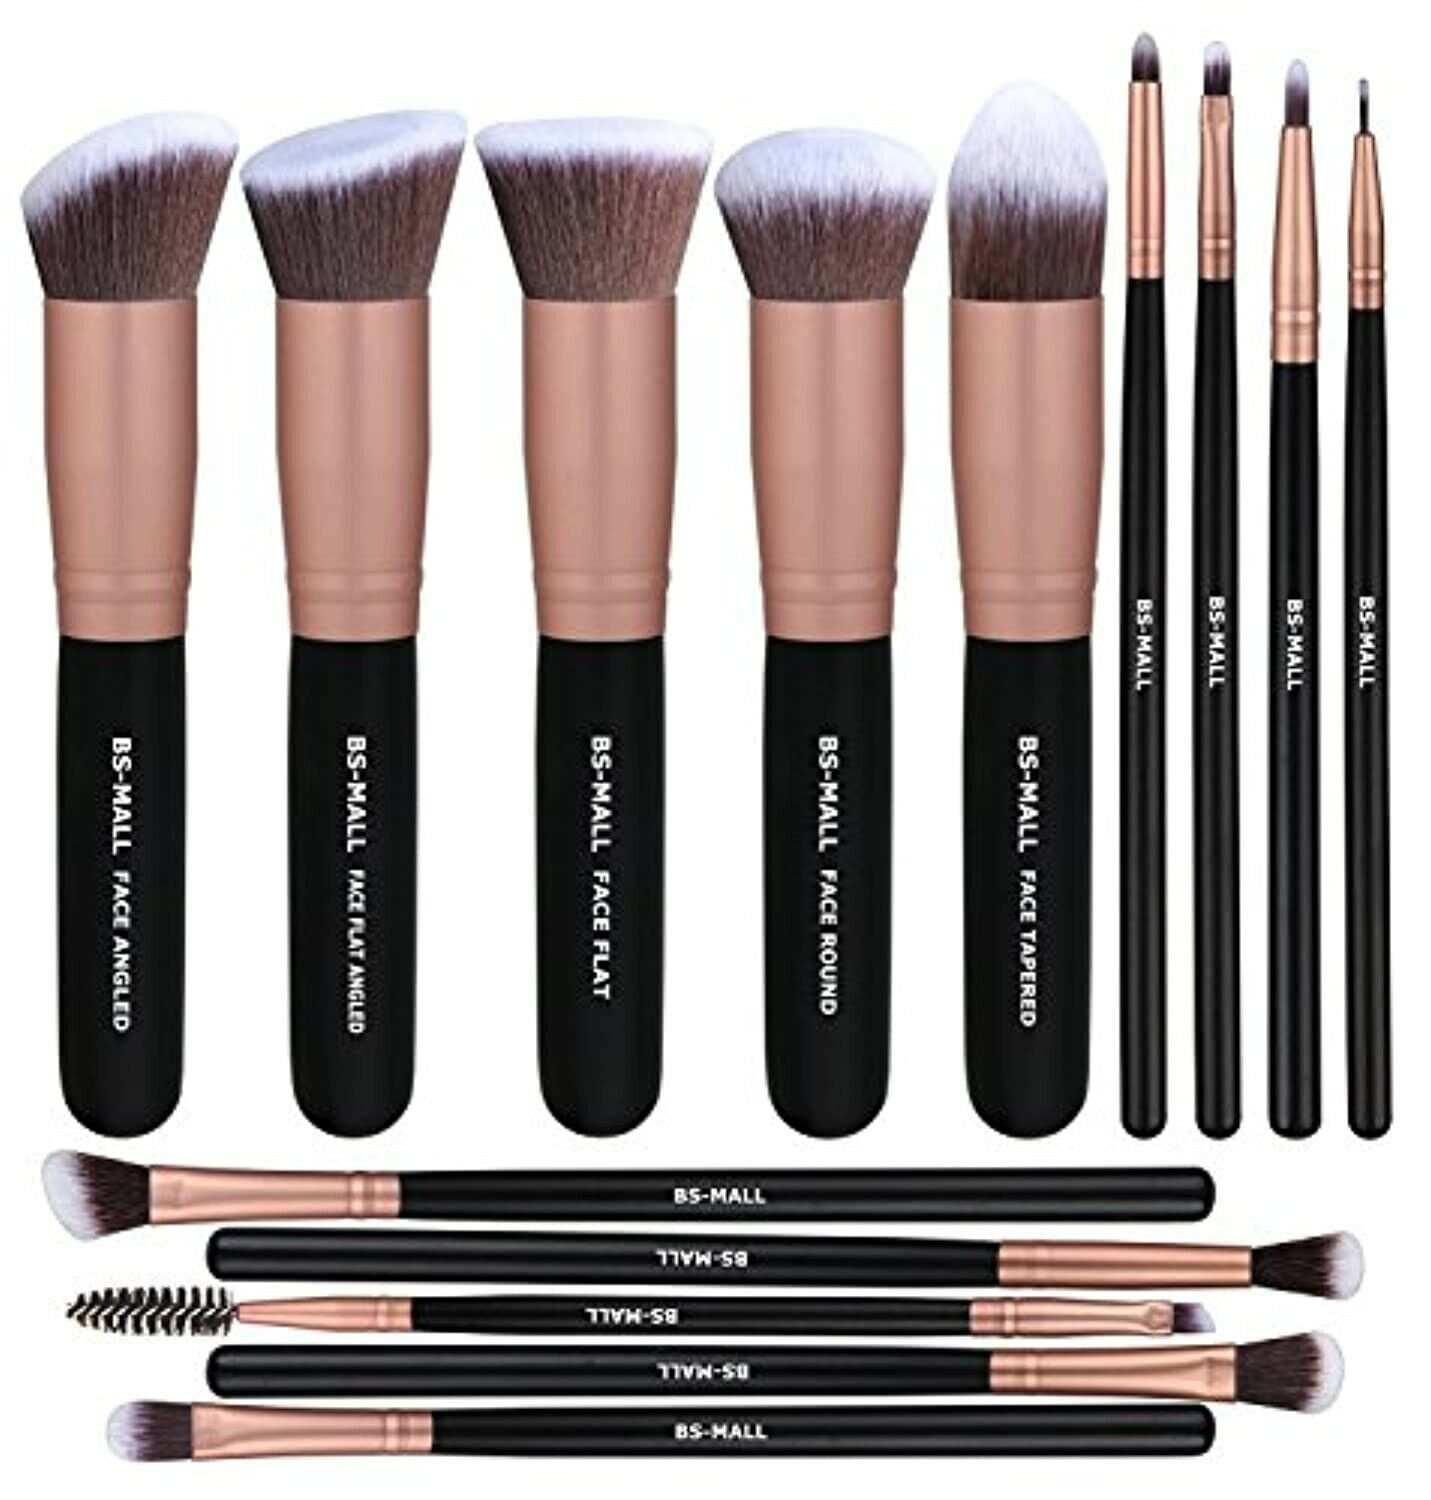 BS-MALL Makeup Brushes Premium Synthetic 14 Pcs Brush Set, R